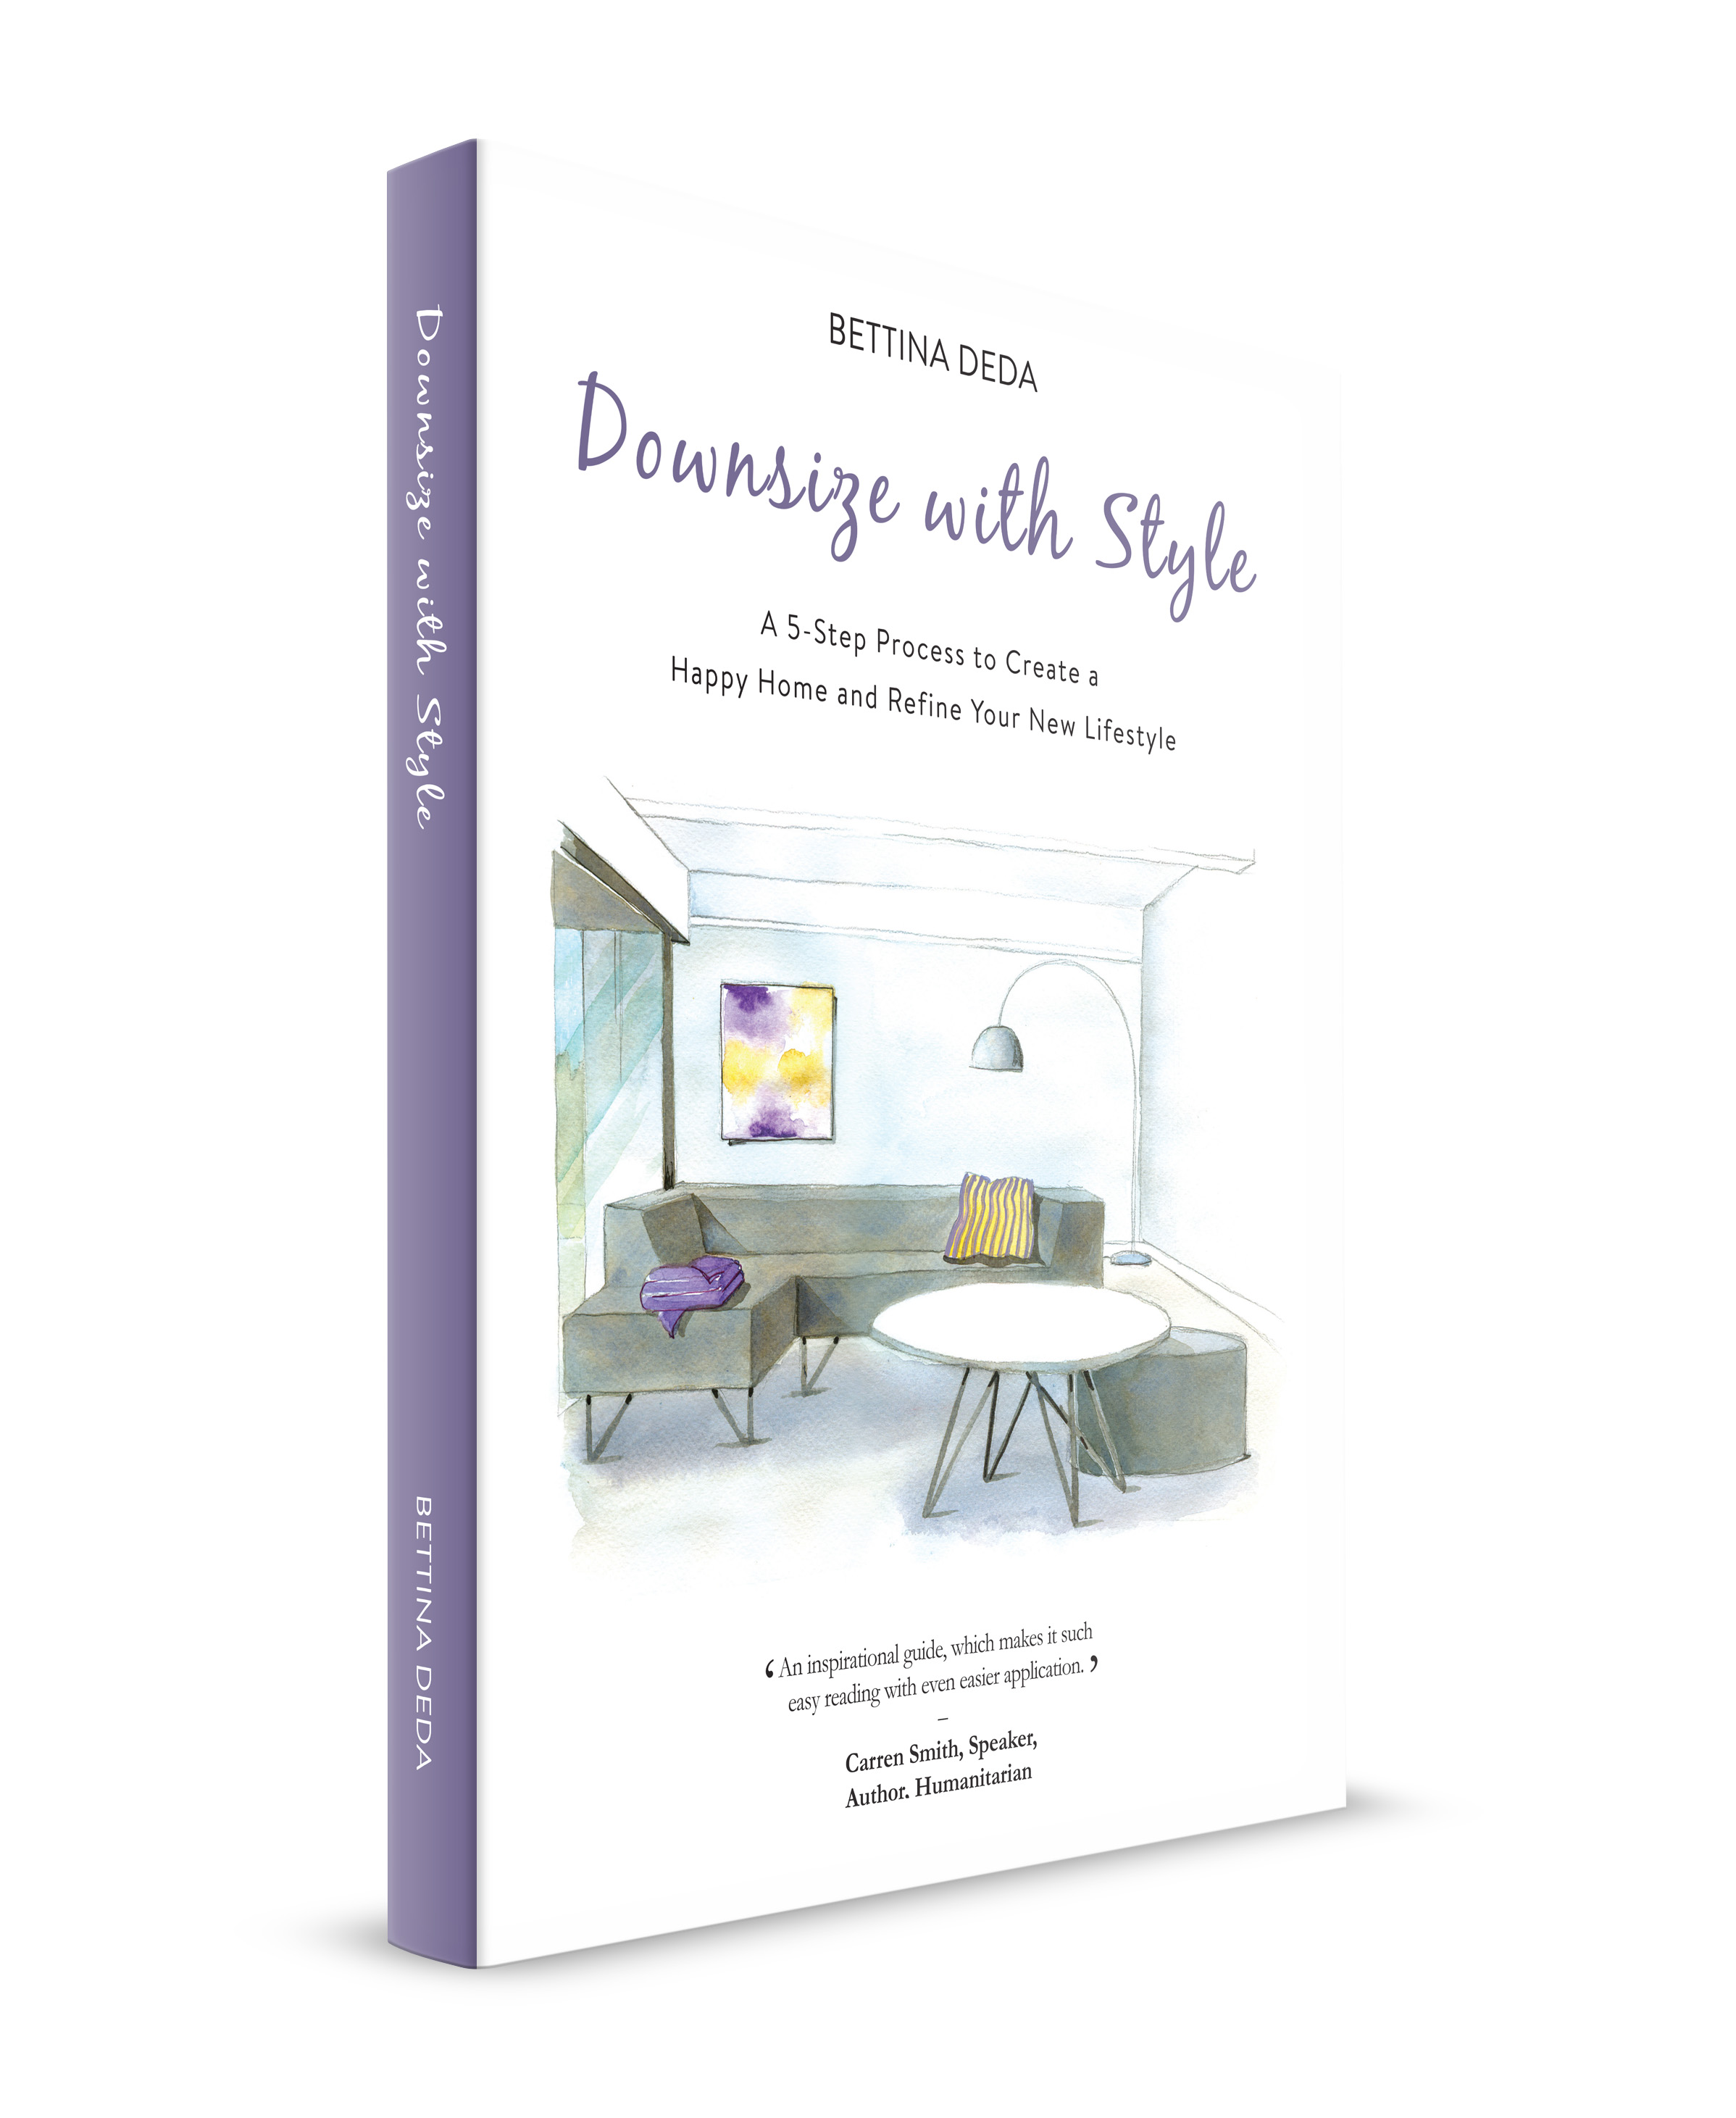 downsize-with-style-bettina-deda-home-downsizing-interior-design-advice